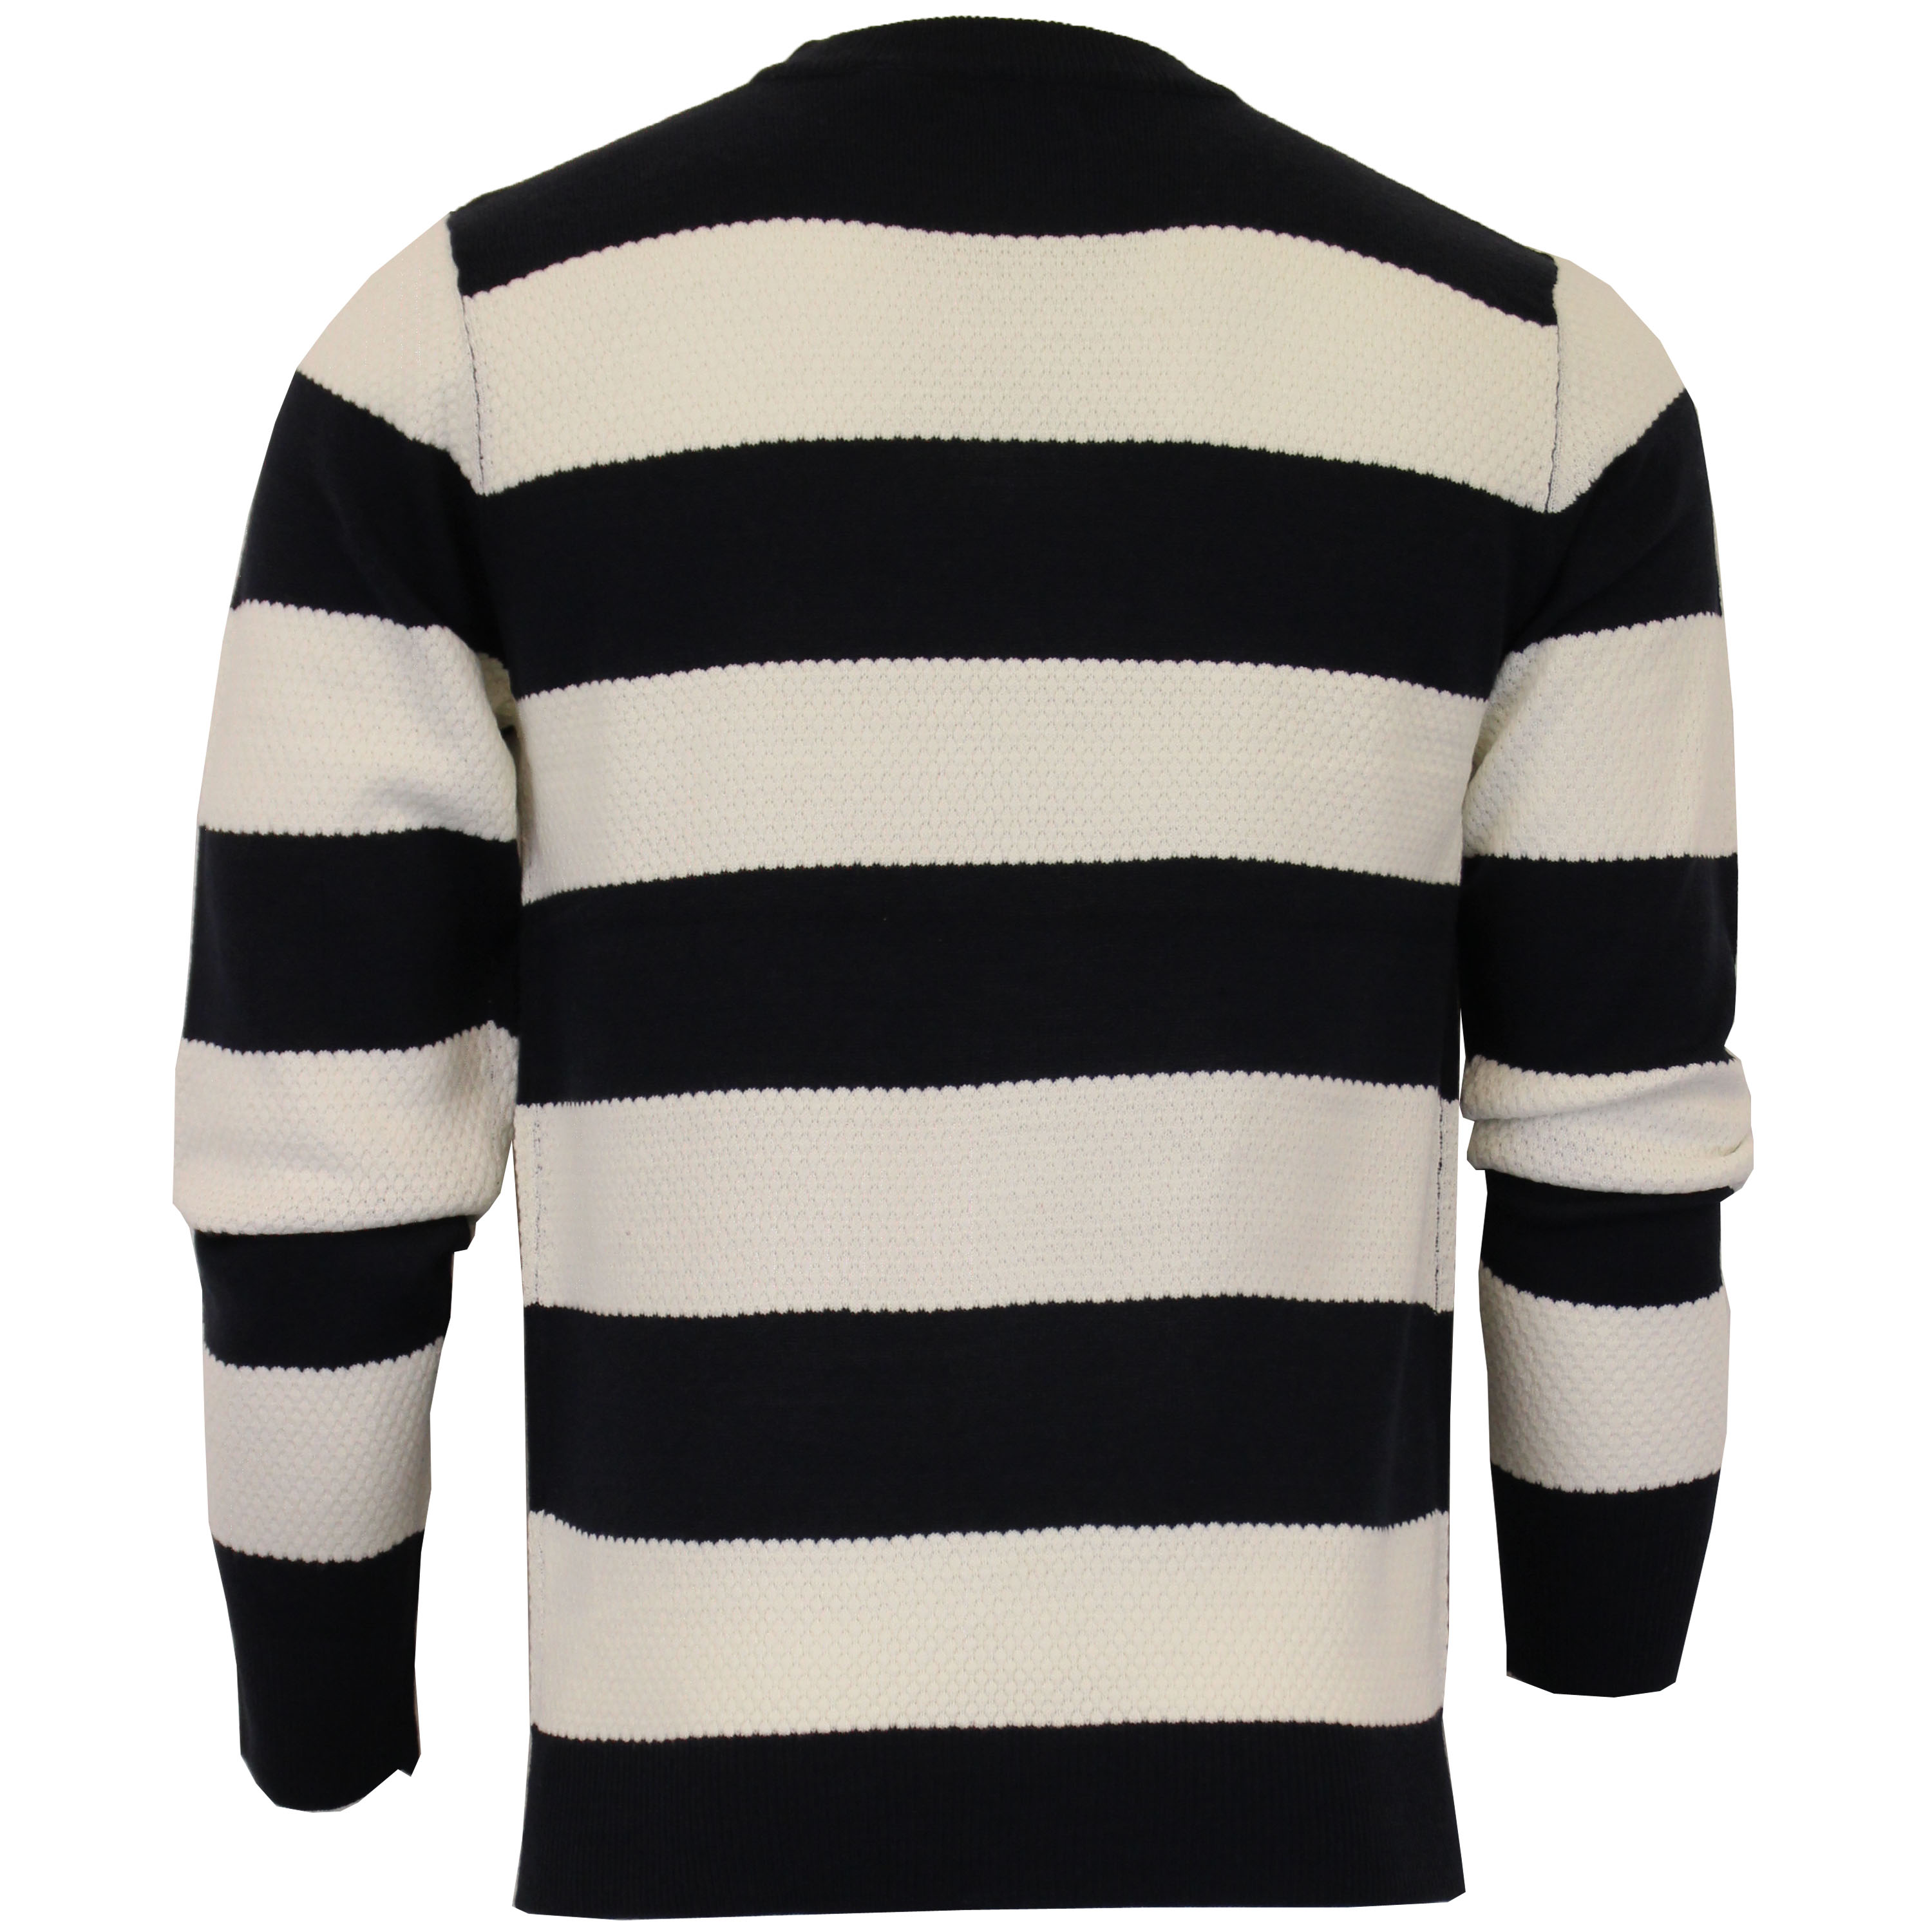 Mens-Jumper-Brave-Soul-Knitted-Sweater-Pullover-GOODWIN-Crew-Neck-Top-Winter-New thumbnail 18